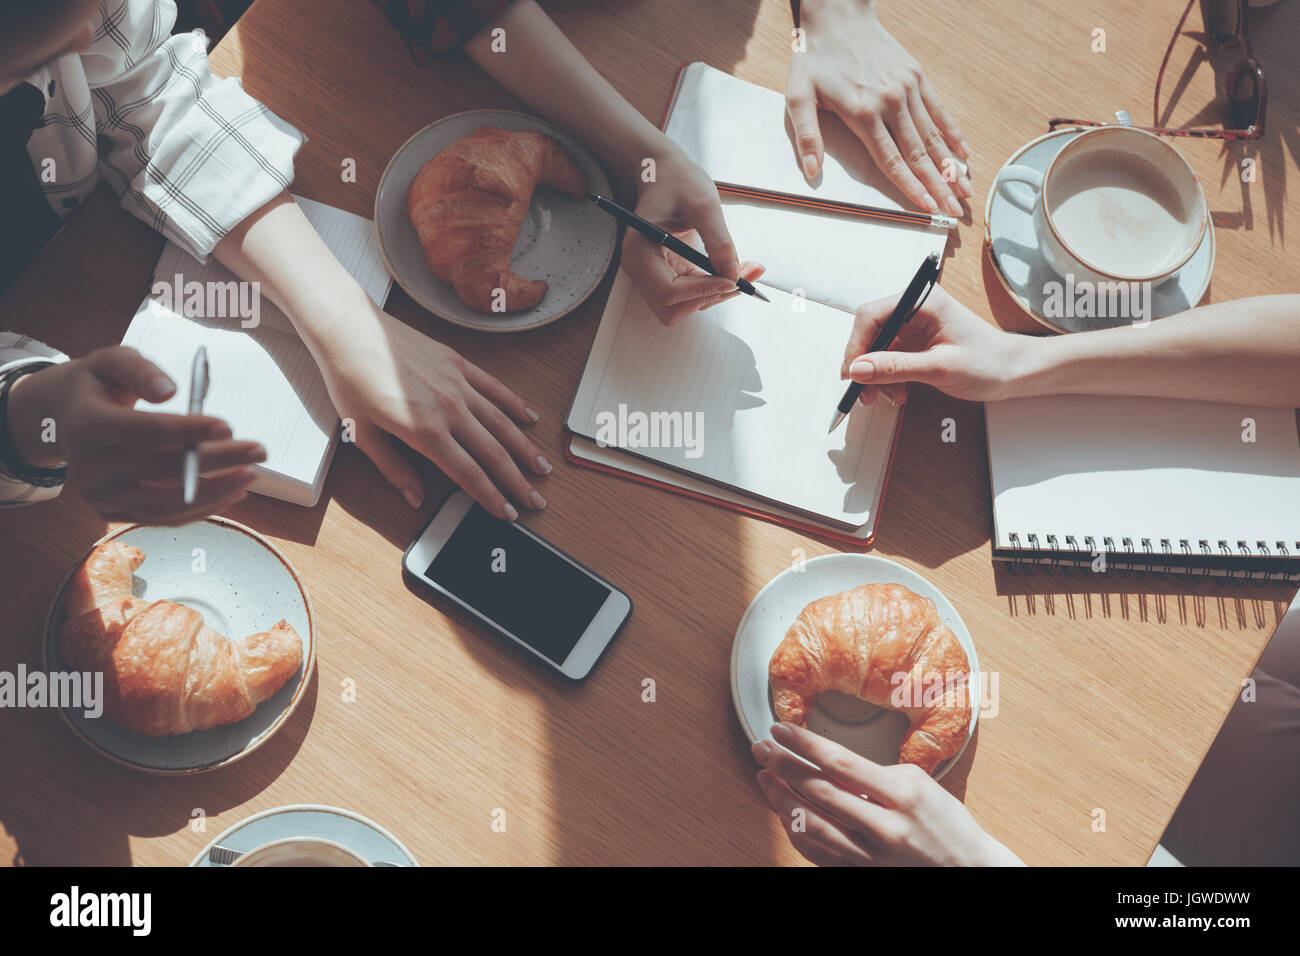 cropped view of people having lunch at meeting in cafe, business lunch concept - Stock Image